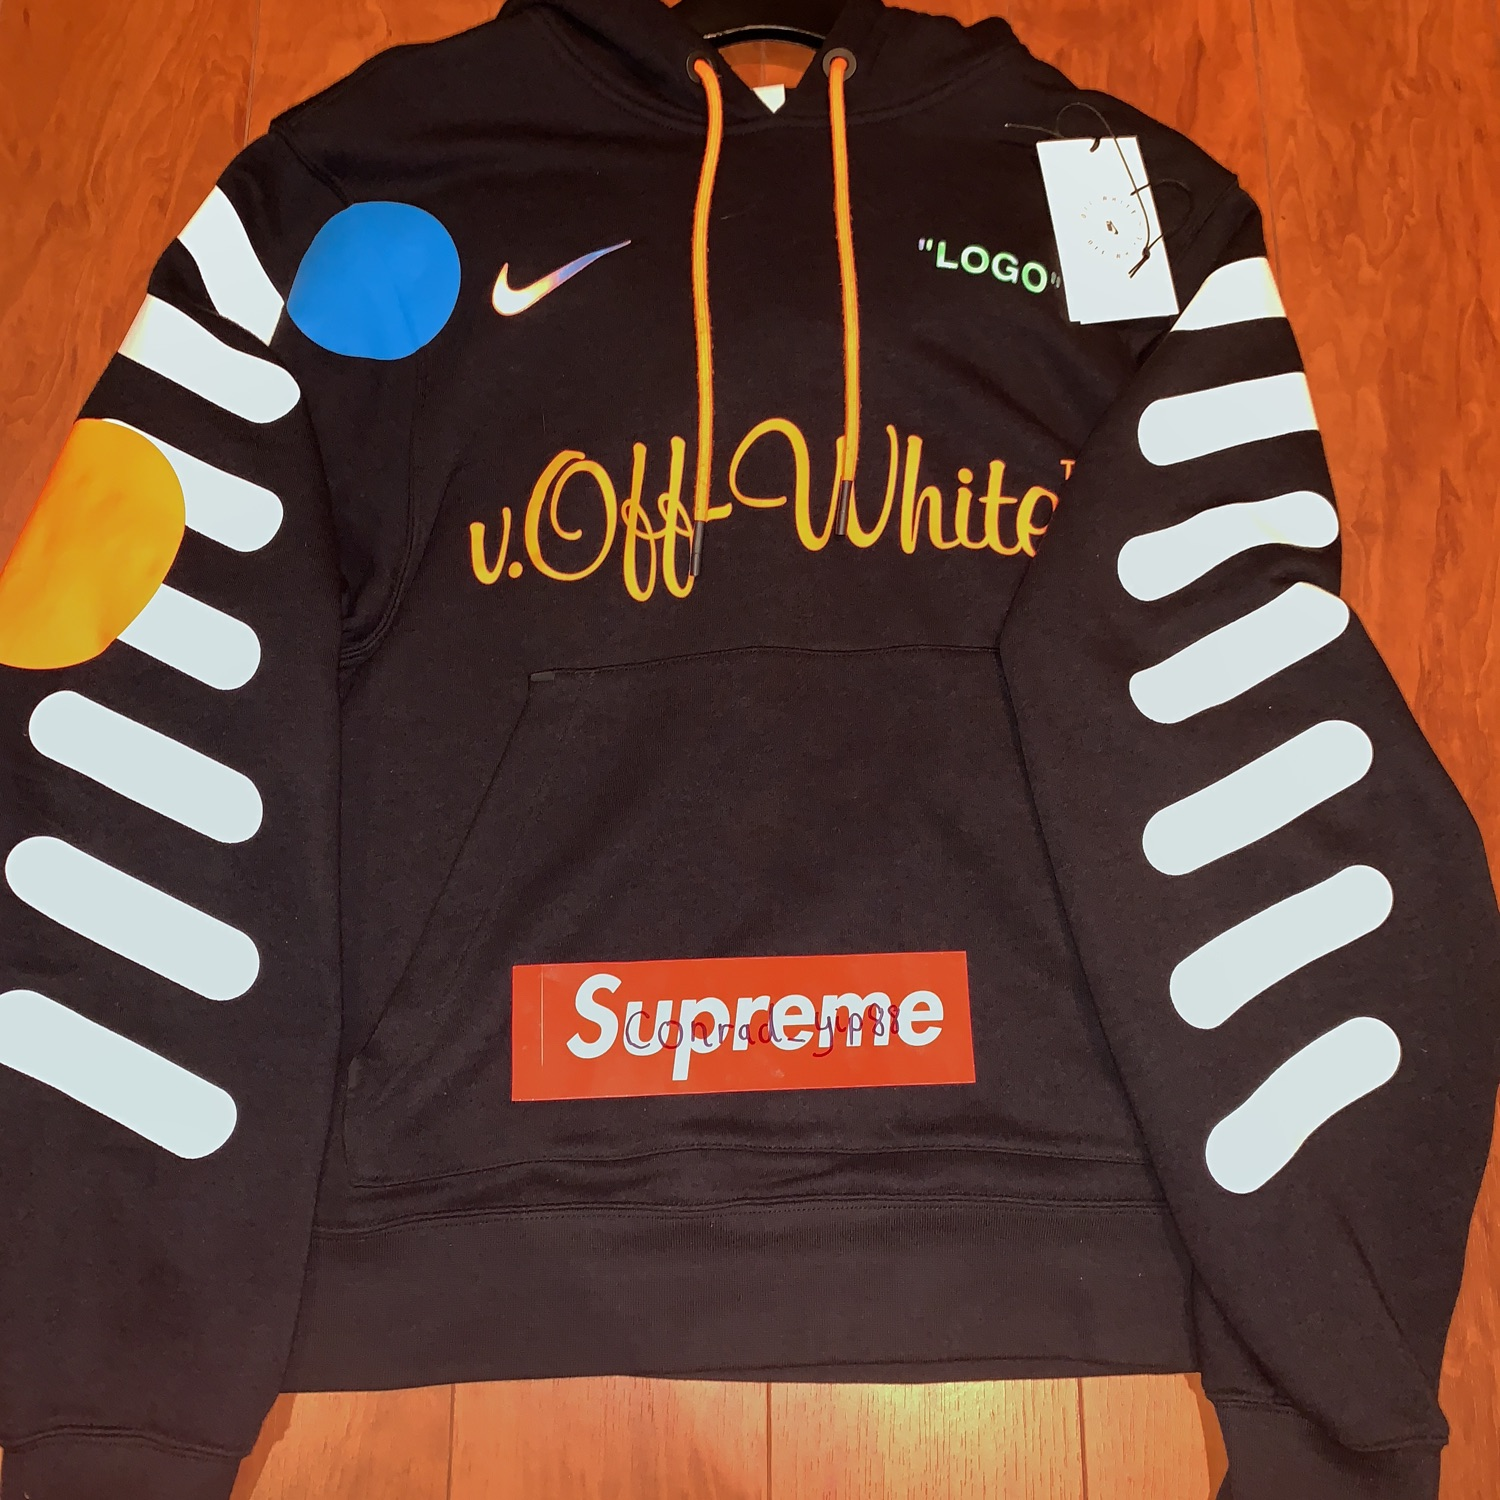 Off White X Nike Mon Amour Hoodie